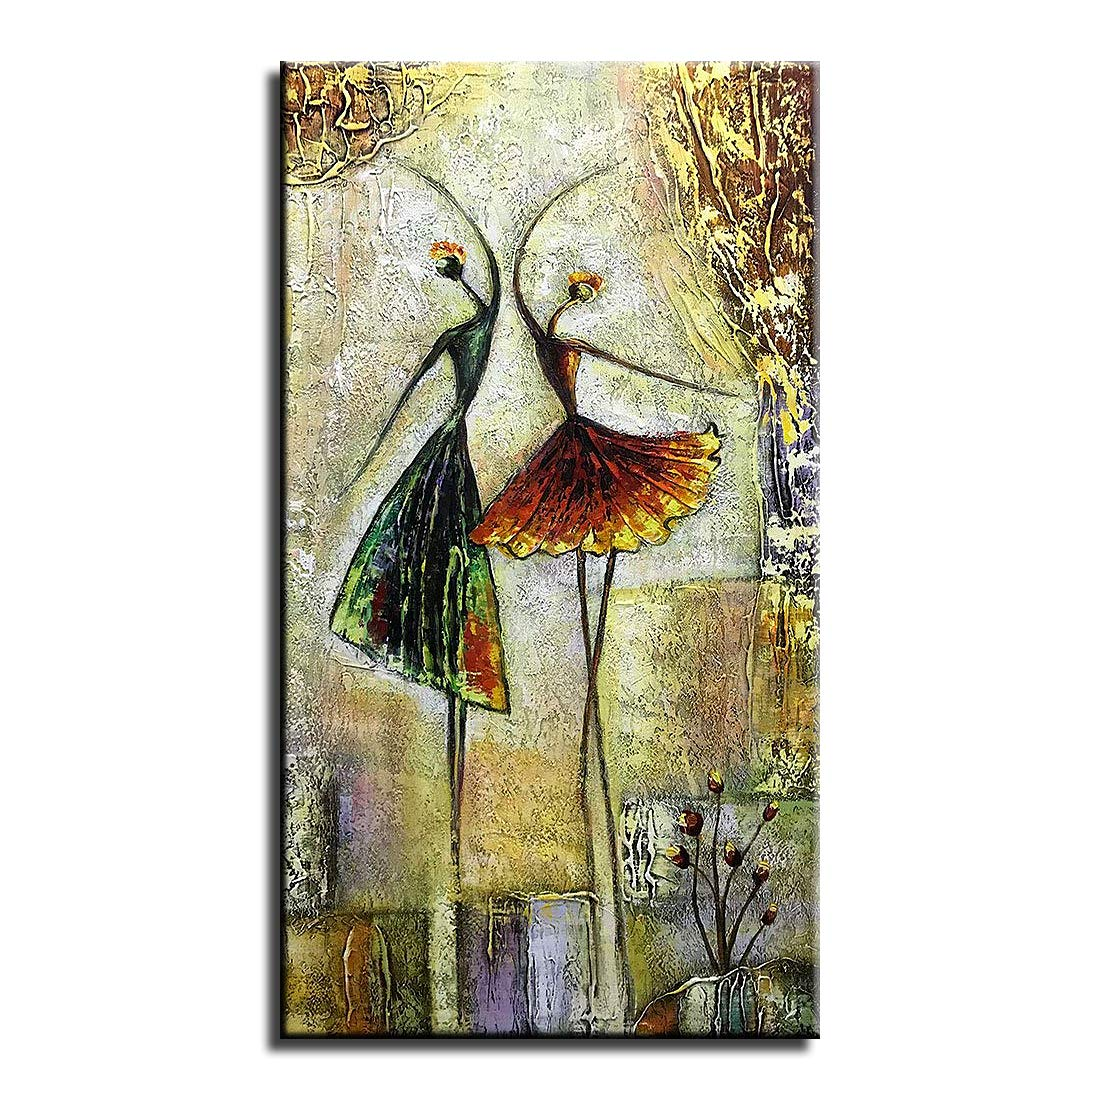 Gincleey Hand Painted Oil Paintings On Canvas, Modern Framed Art 3D Abstract Artwork Ballet Dancers Pictures Vertical Wall Art Ready to Hang for Living Room Bedroom Home Decorations 20'' L x 40'' W